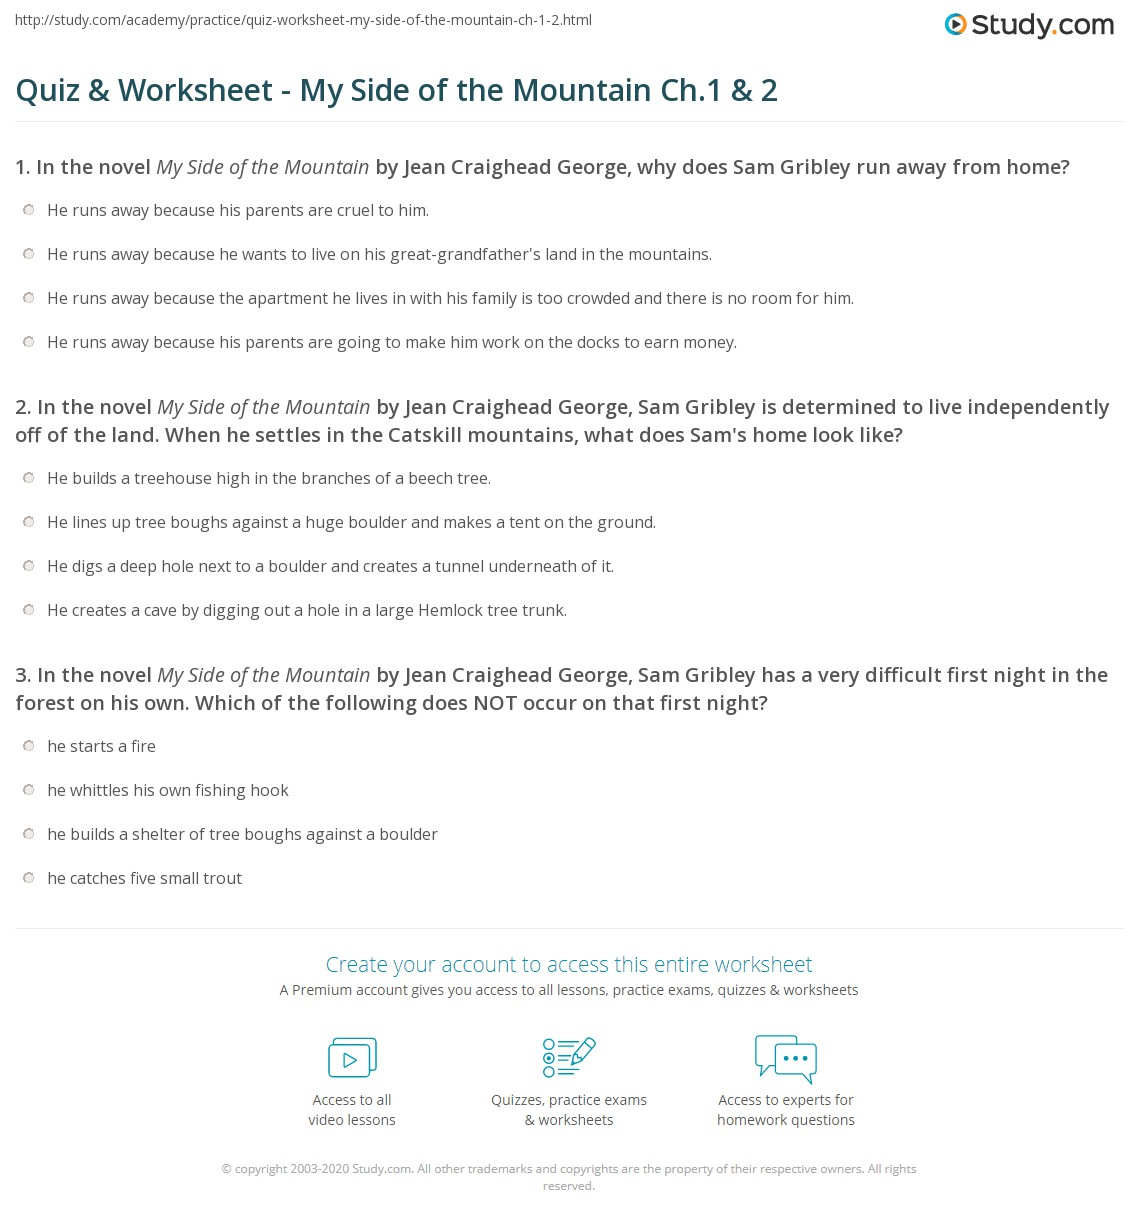 Quiz & Worksheet - My Side of the Mountain Ch.1 & 2 | Study.com